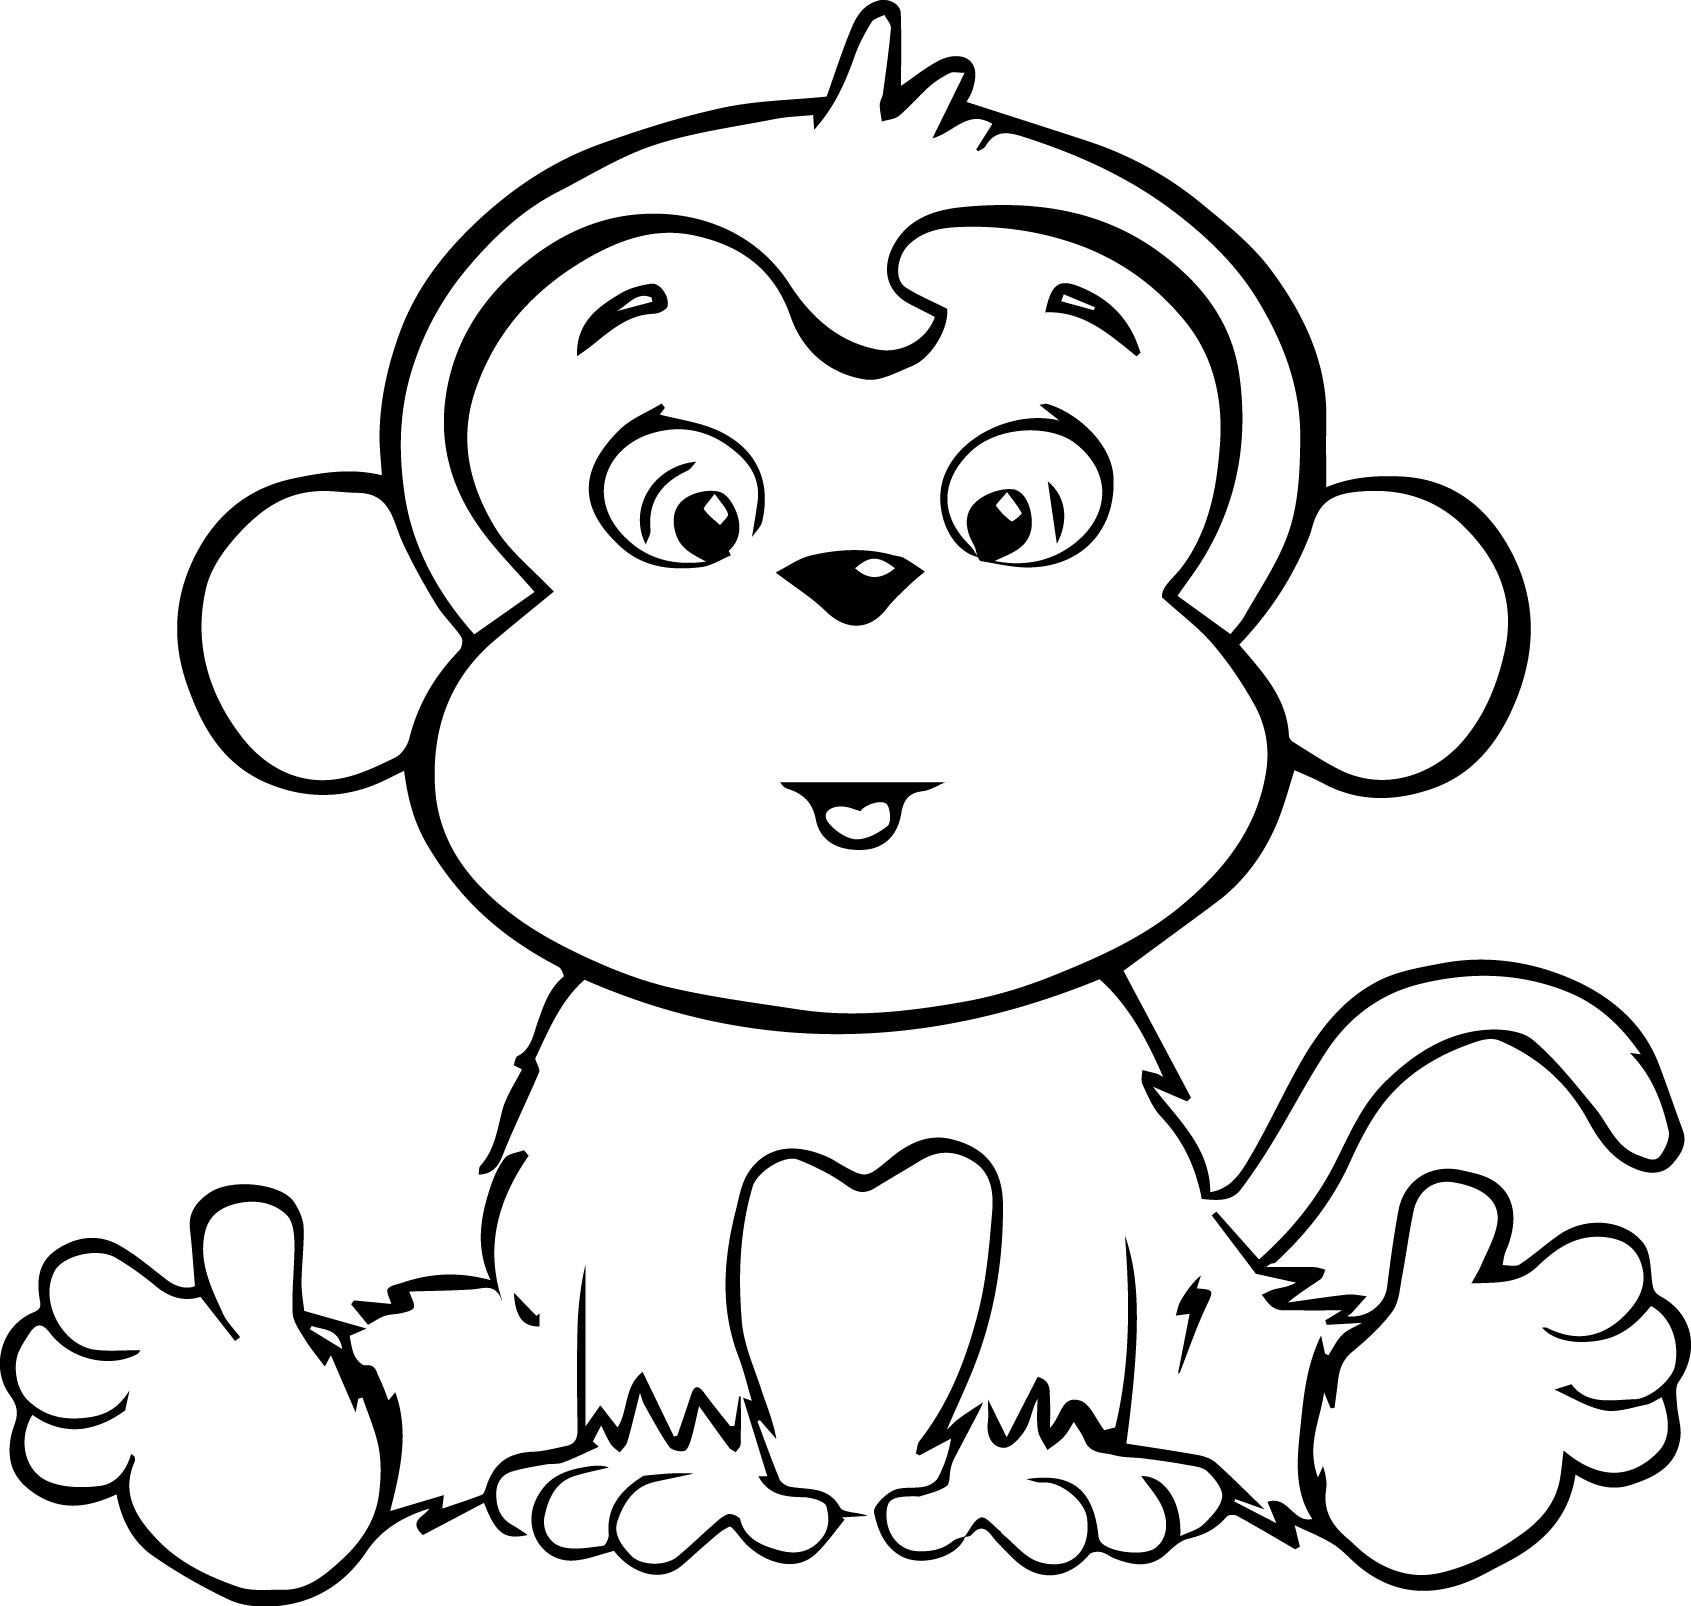 Opt For The Best Cartoon Coloring Pages For Your Kids Monkey Coloring Pages Cartoon Coloring Pages Baby Coloring Pages